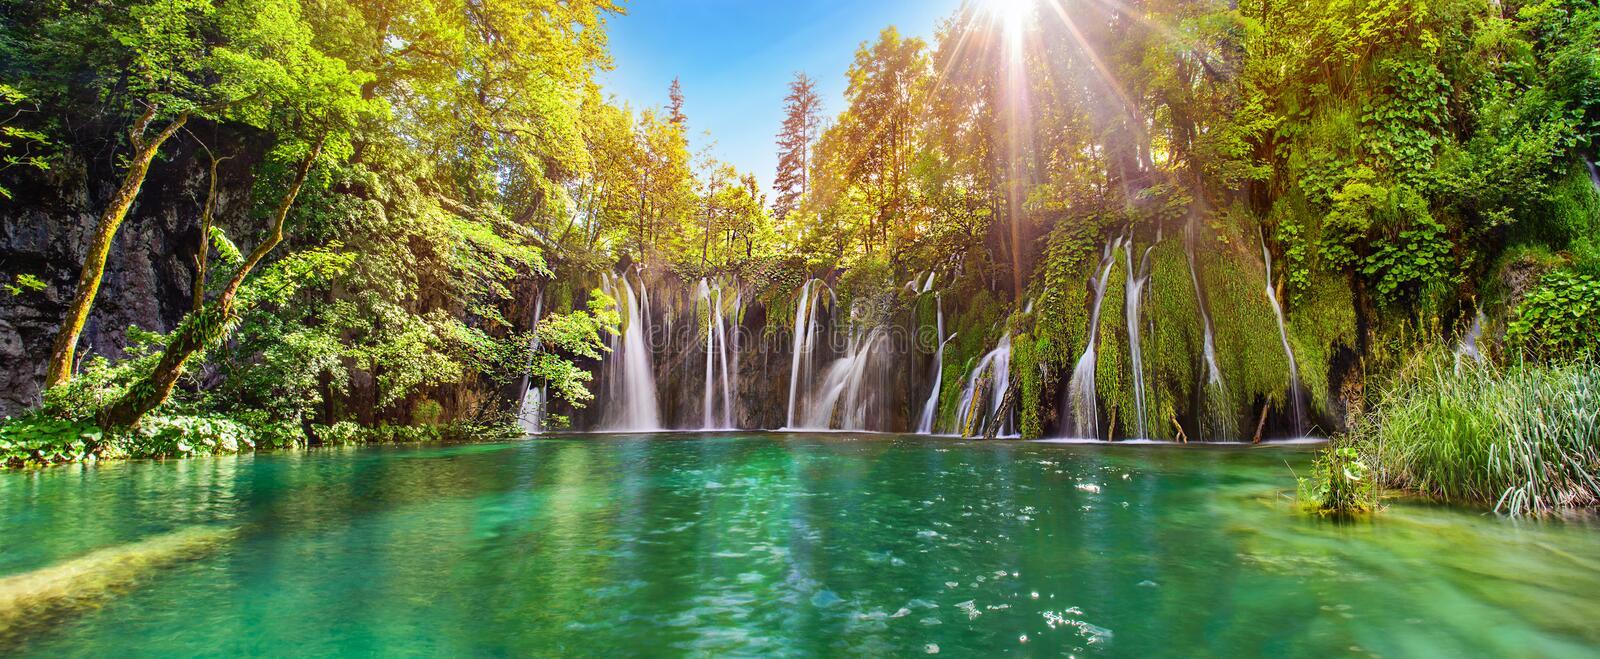 Verbazend watervalpanorama in Plitvice-Meren Nationaal Park, Cro stock foto's